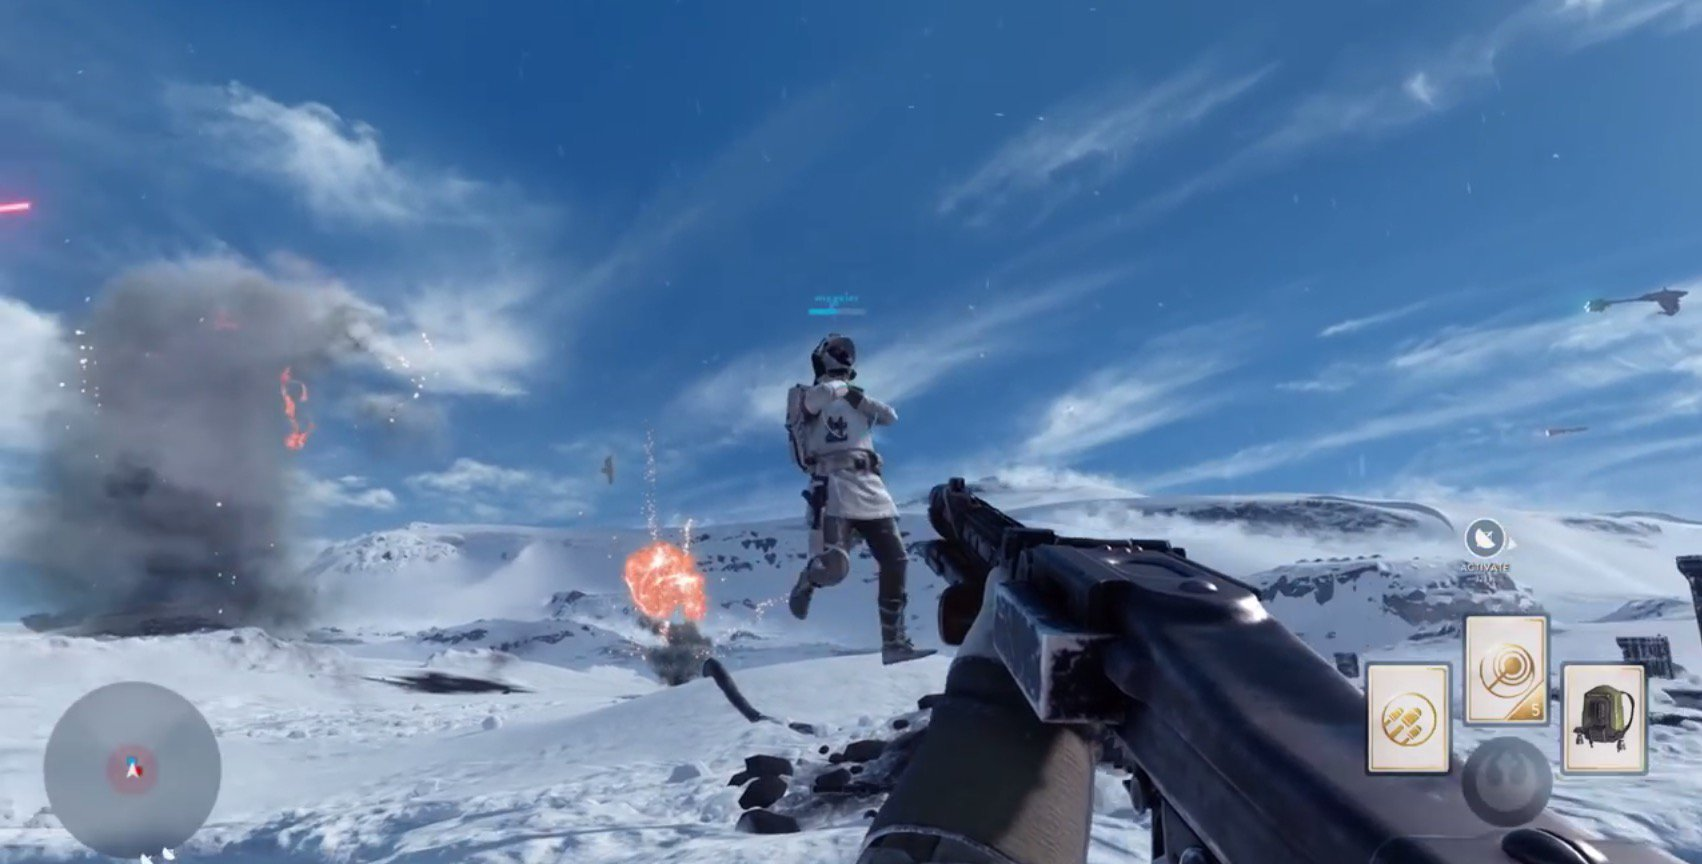 13 Common Star Wars Battlefront Problems & How to Fix Them